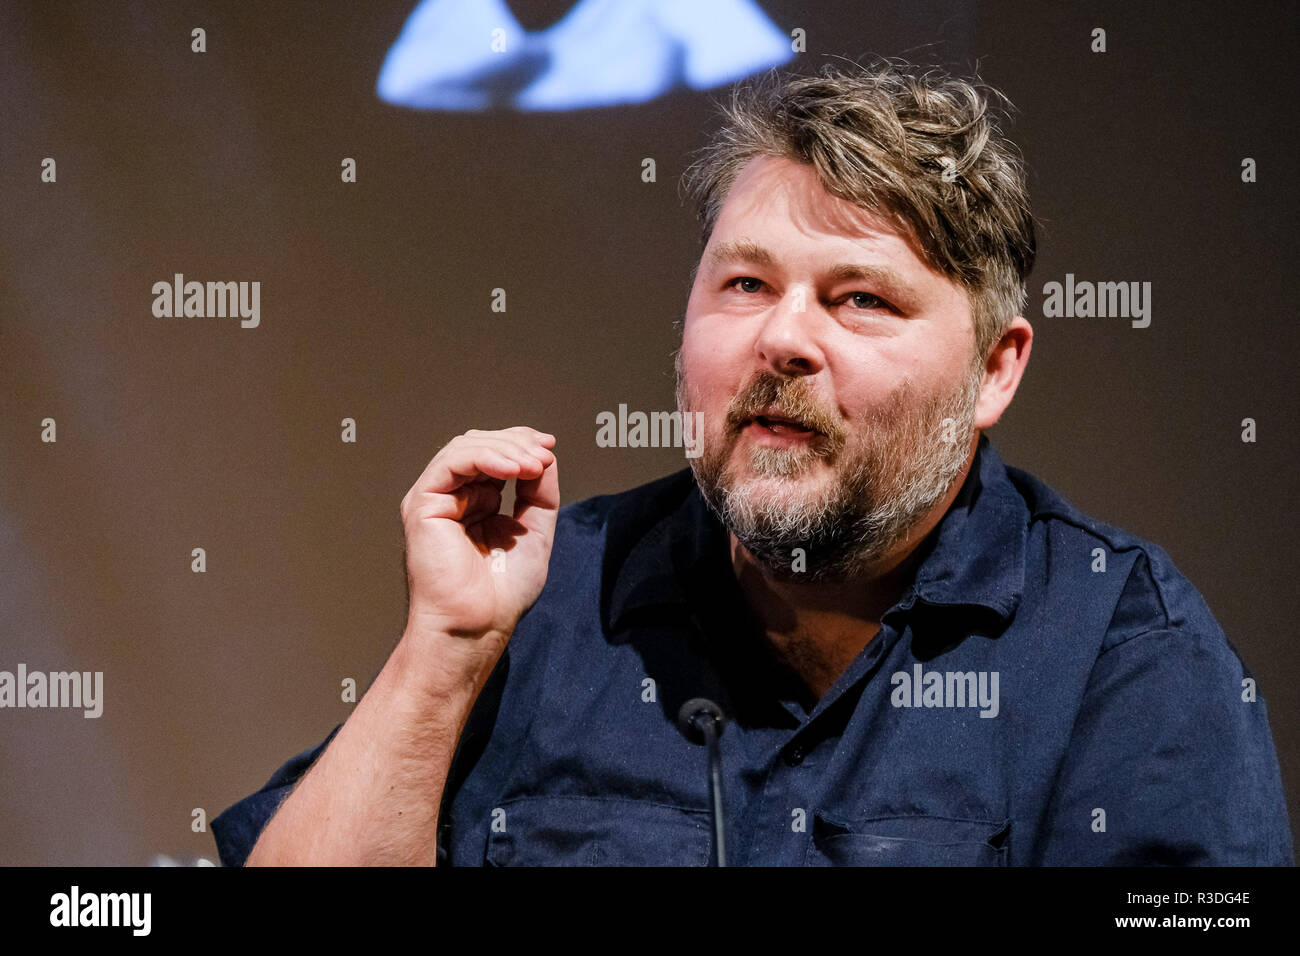 Filmmaker Ben Wheatley appears on Mark Kermode Live in 3D on Monday 19 November 2018 held at BFI Southbank, London. Pictured: Ben Wheatley. - Stock Image